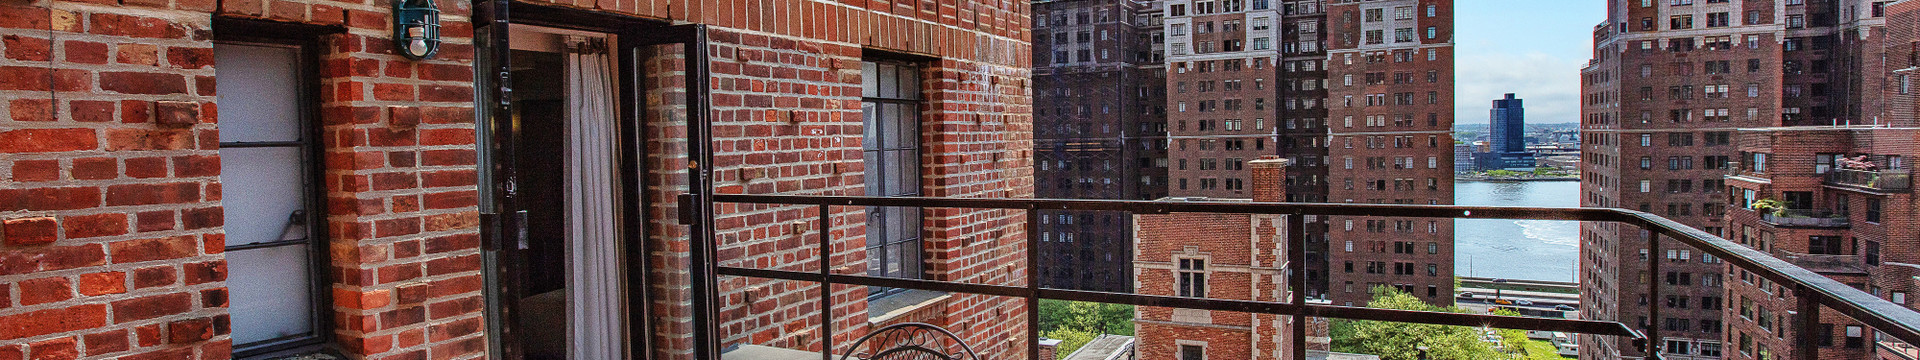 A View from our Hotels Rooms in NYC   Westgate New York Grand Central Hotel   Hotel Rooms in Manhattan NY